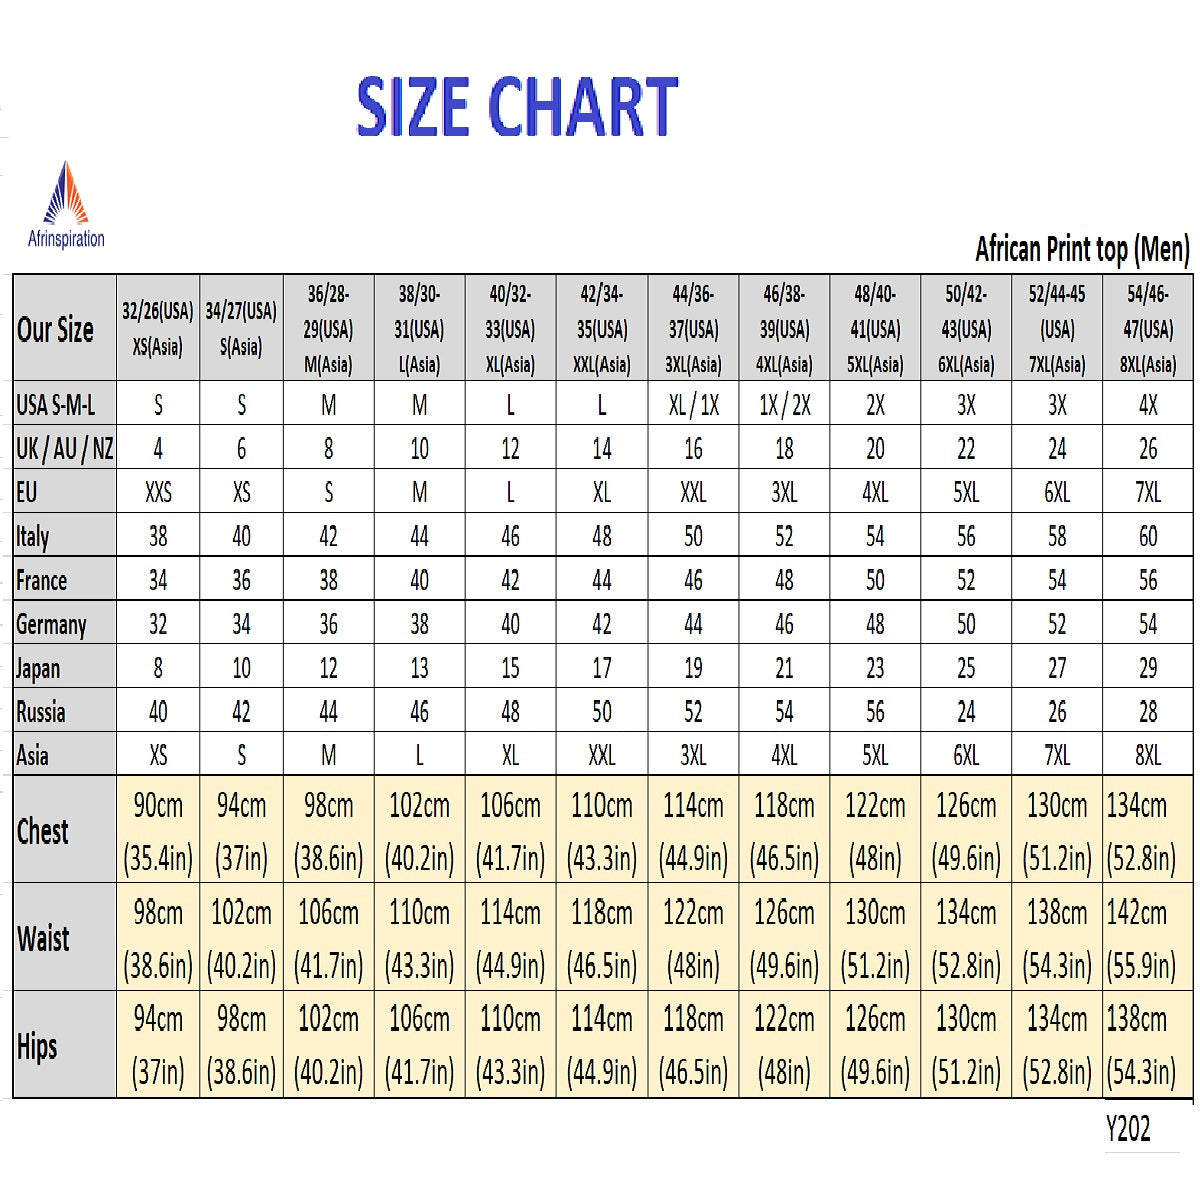 Afrinspiration size chart for men top